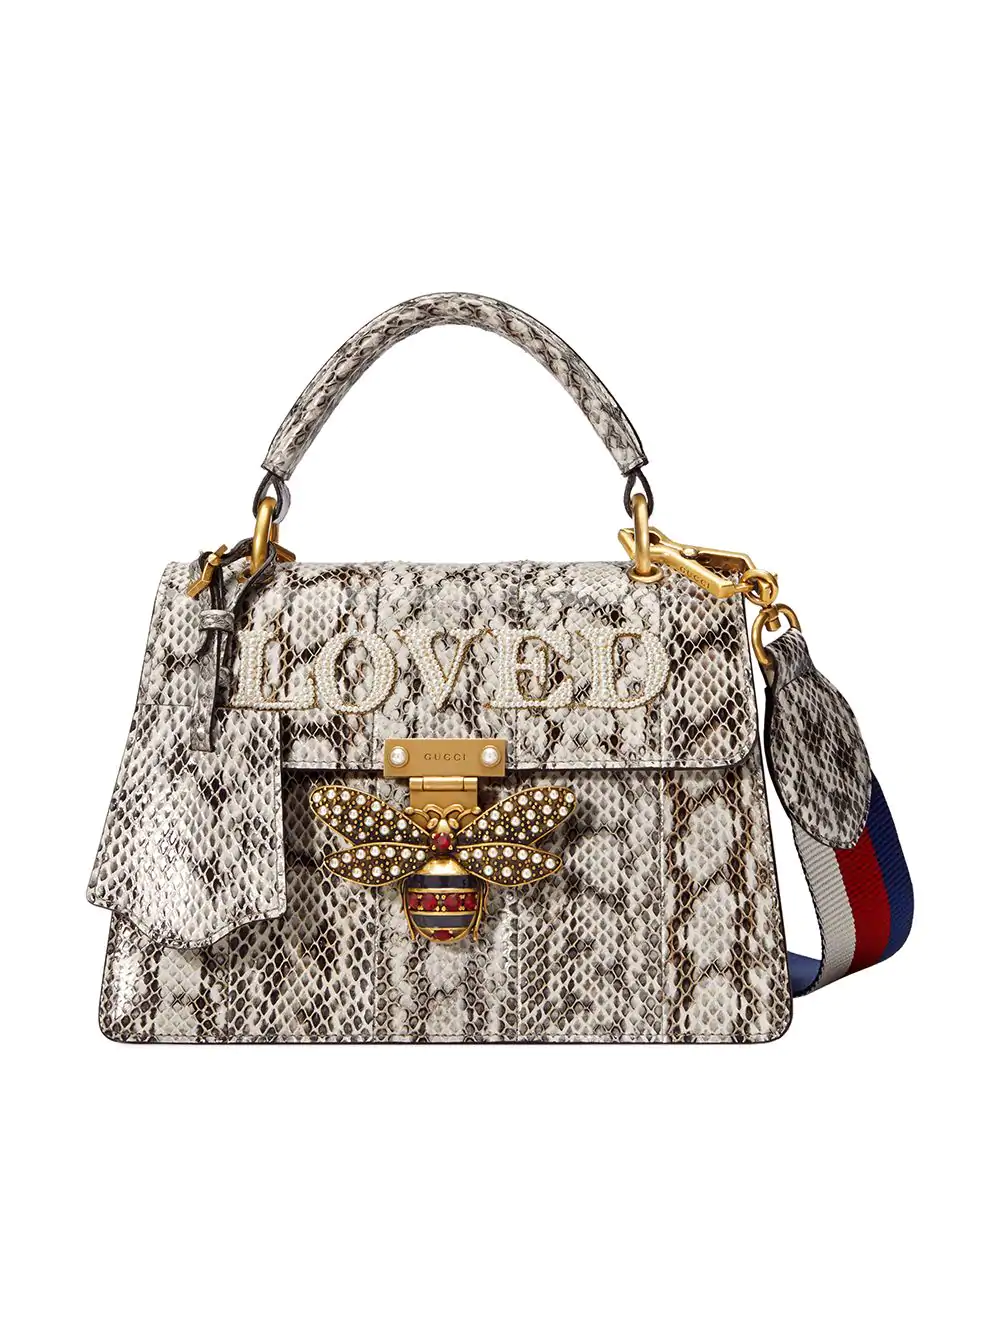 6396cacfdb1 Gucci Queen Margaret Embellished Python Tote In Nude